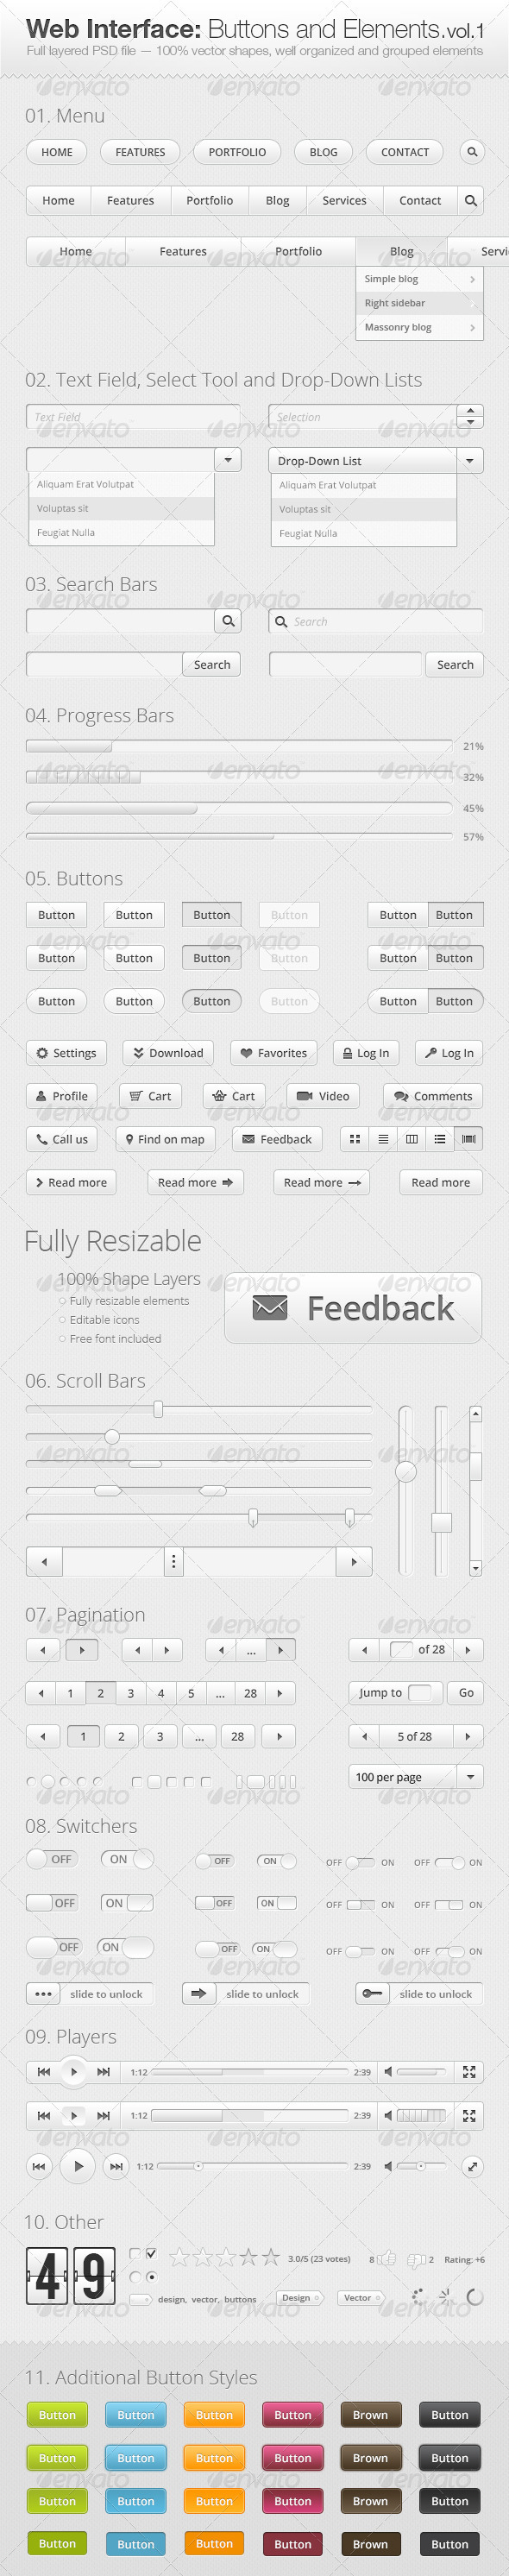 GraphicRiver Web Interface Buttons and Elements Collection 3346763